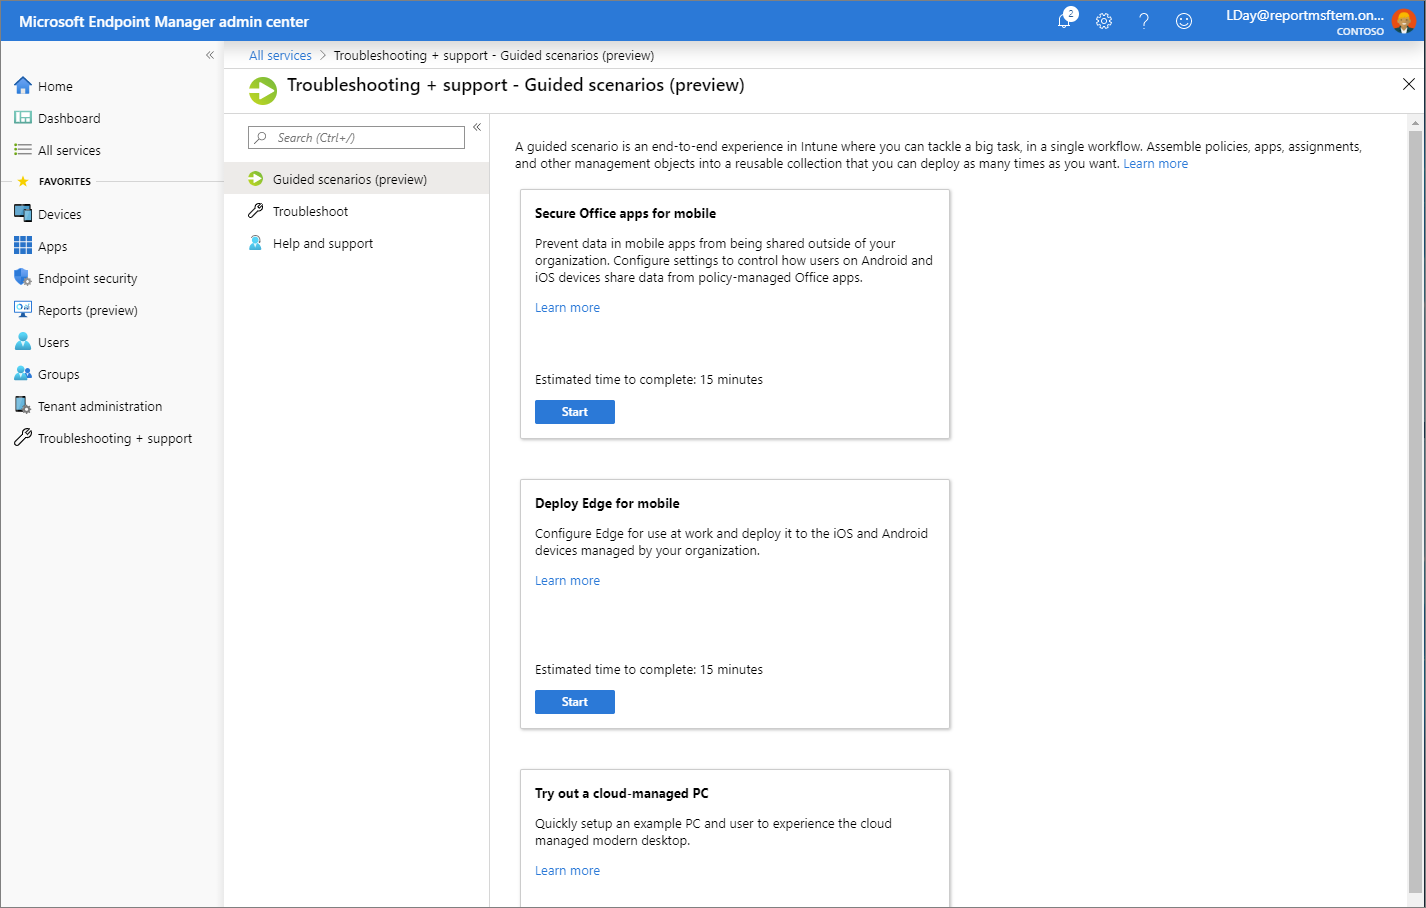 Screenshot of the Microsoft Endpoint Manager admin center - Guided scenarios